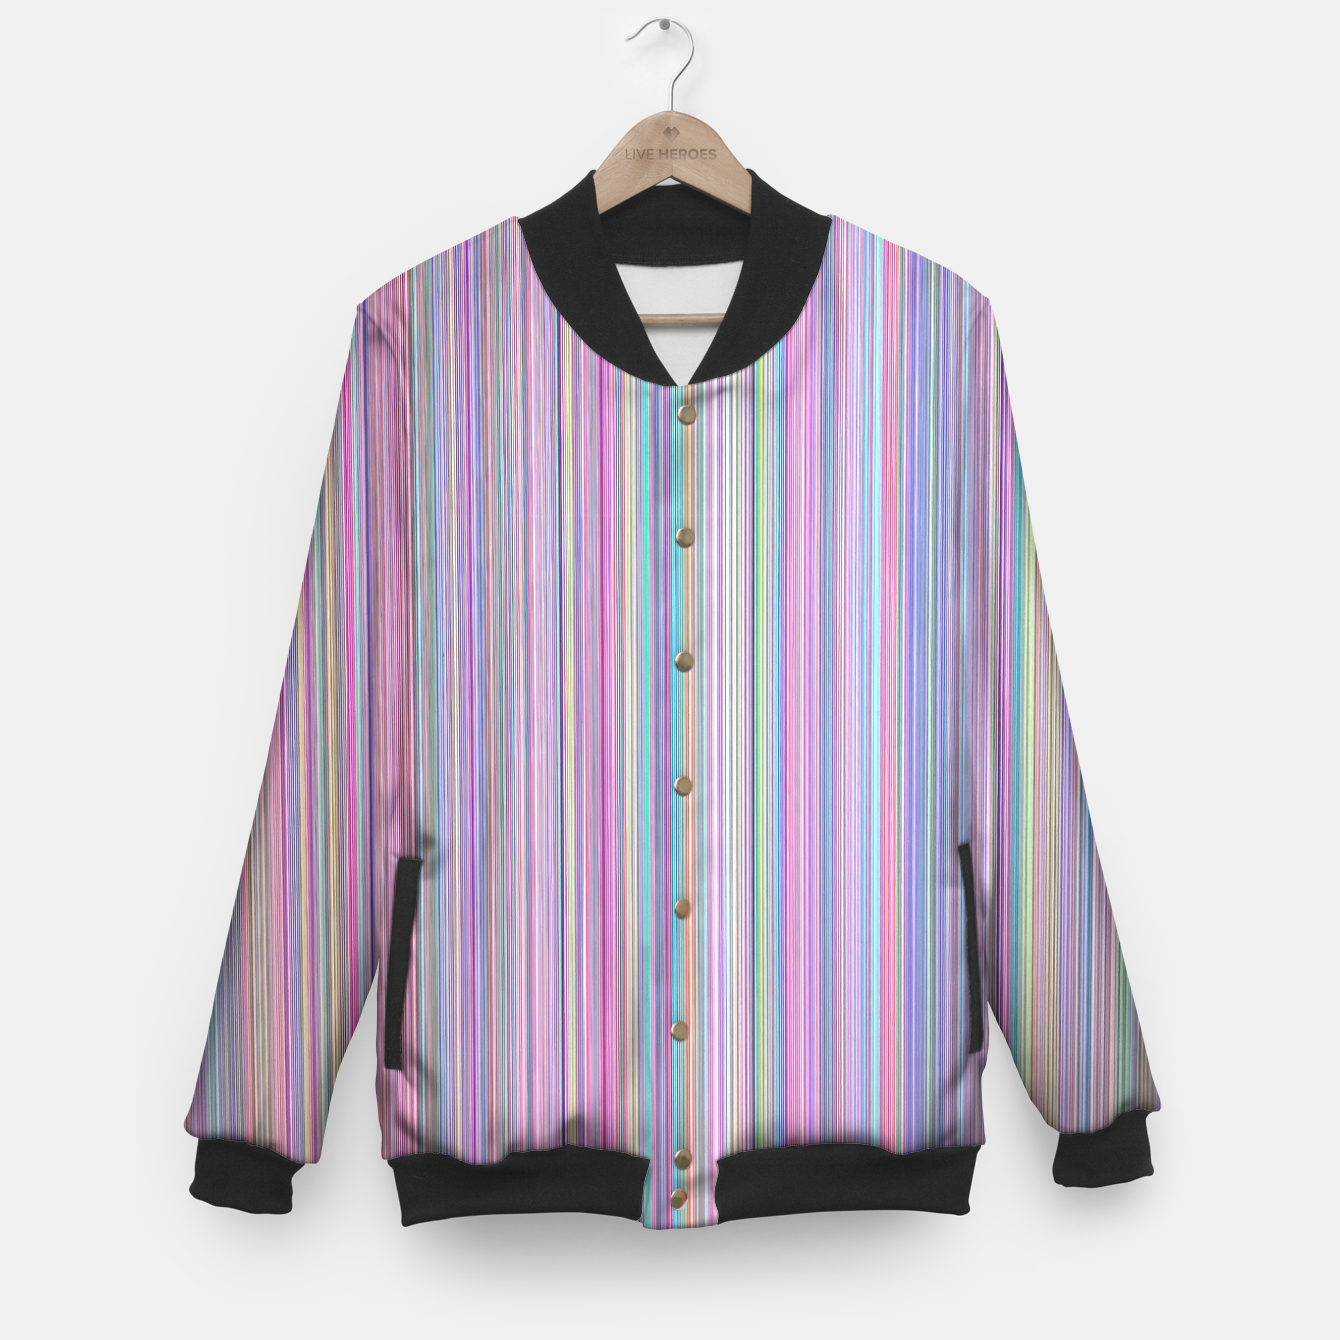 Broken Flat Screen TV Test Pattern Baseball Jacket, Live Heroes